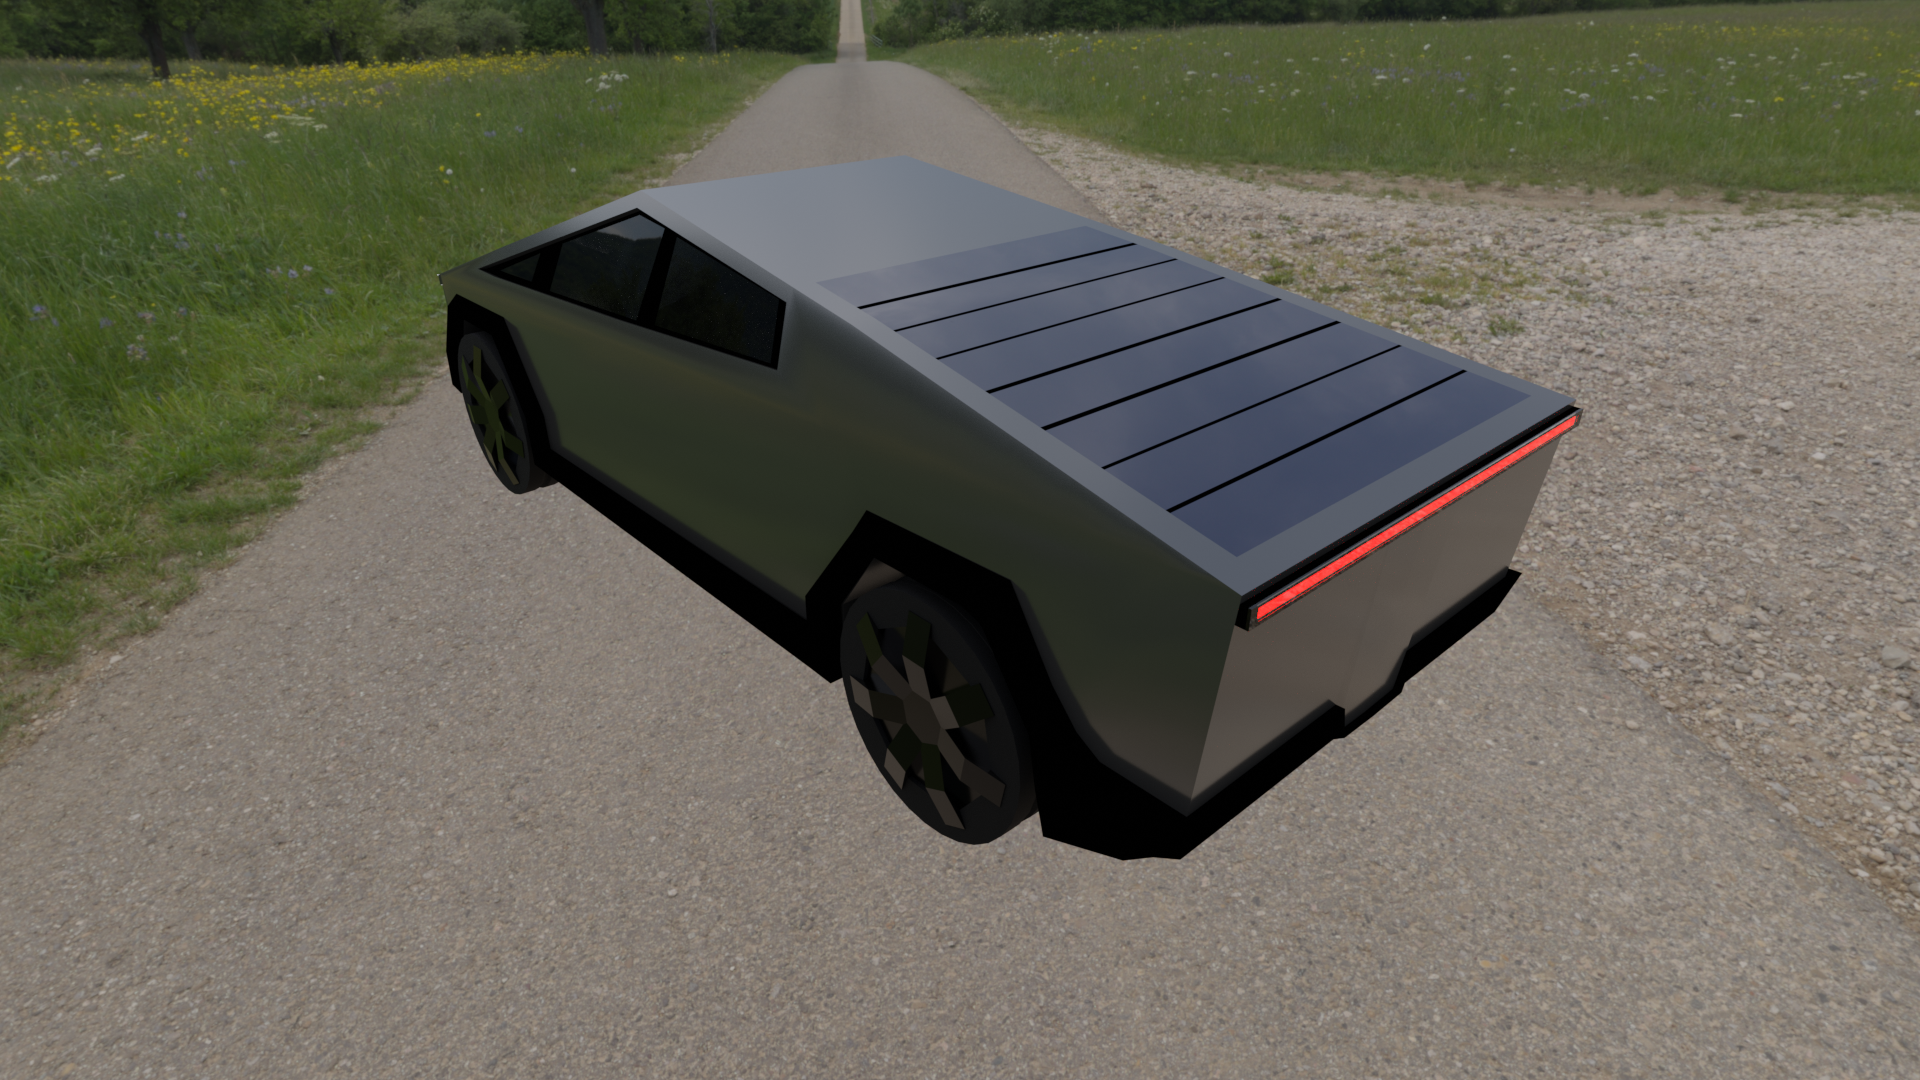 Tesla cybertruck preview image 2